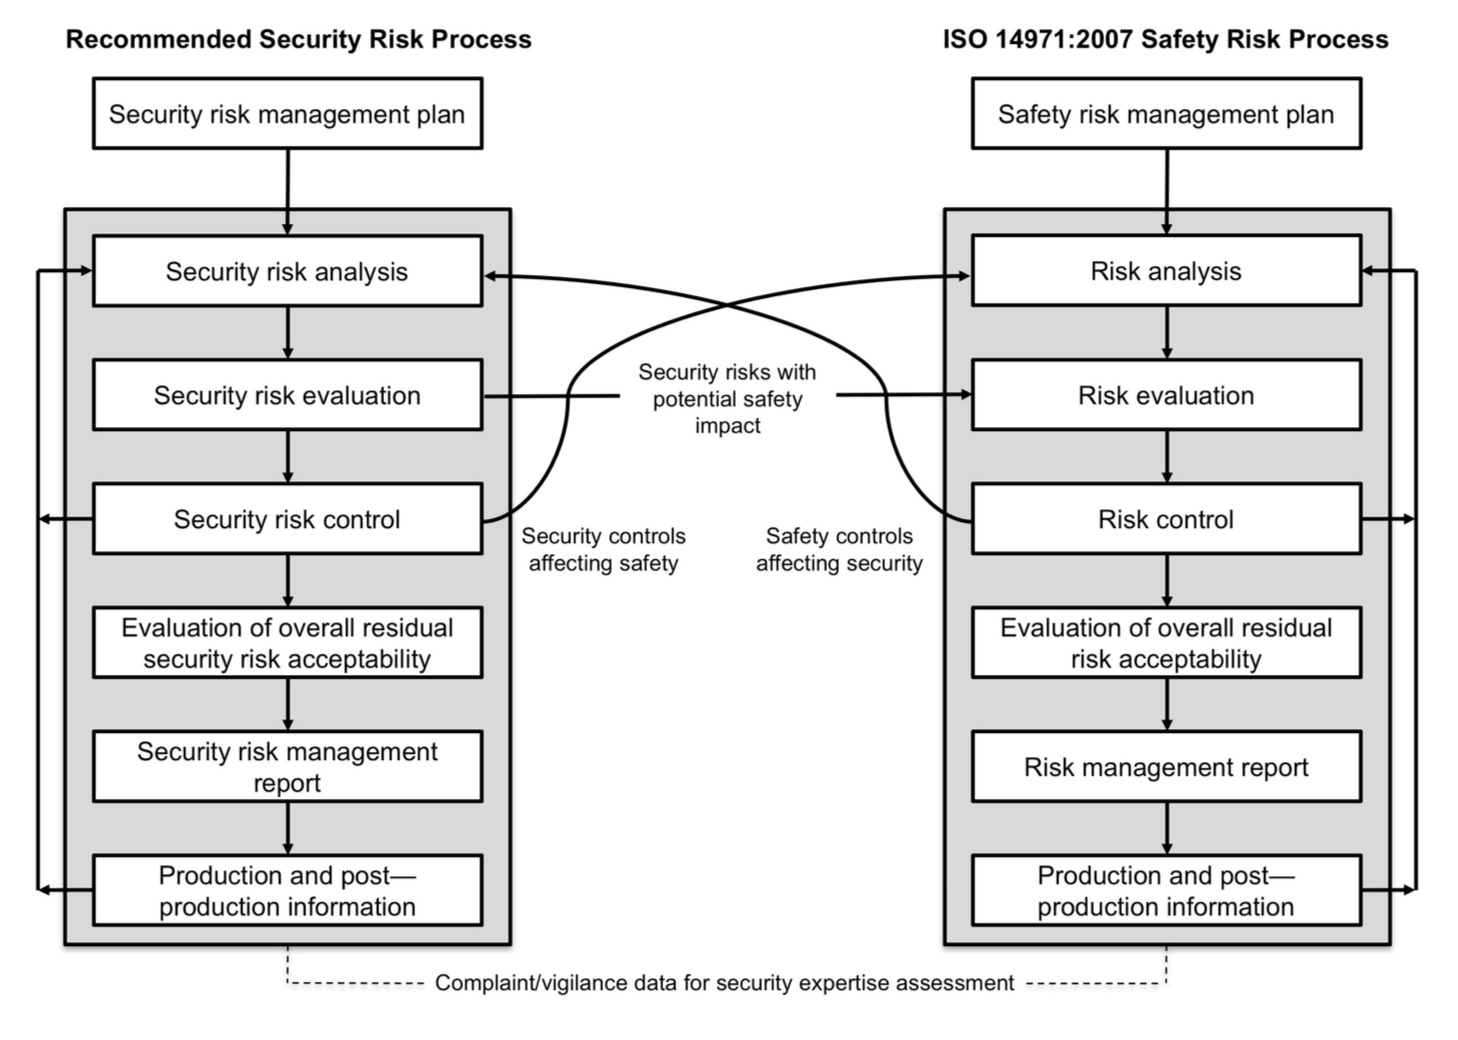 Relationships between the security risk and safety risk management processes